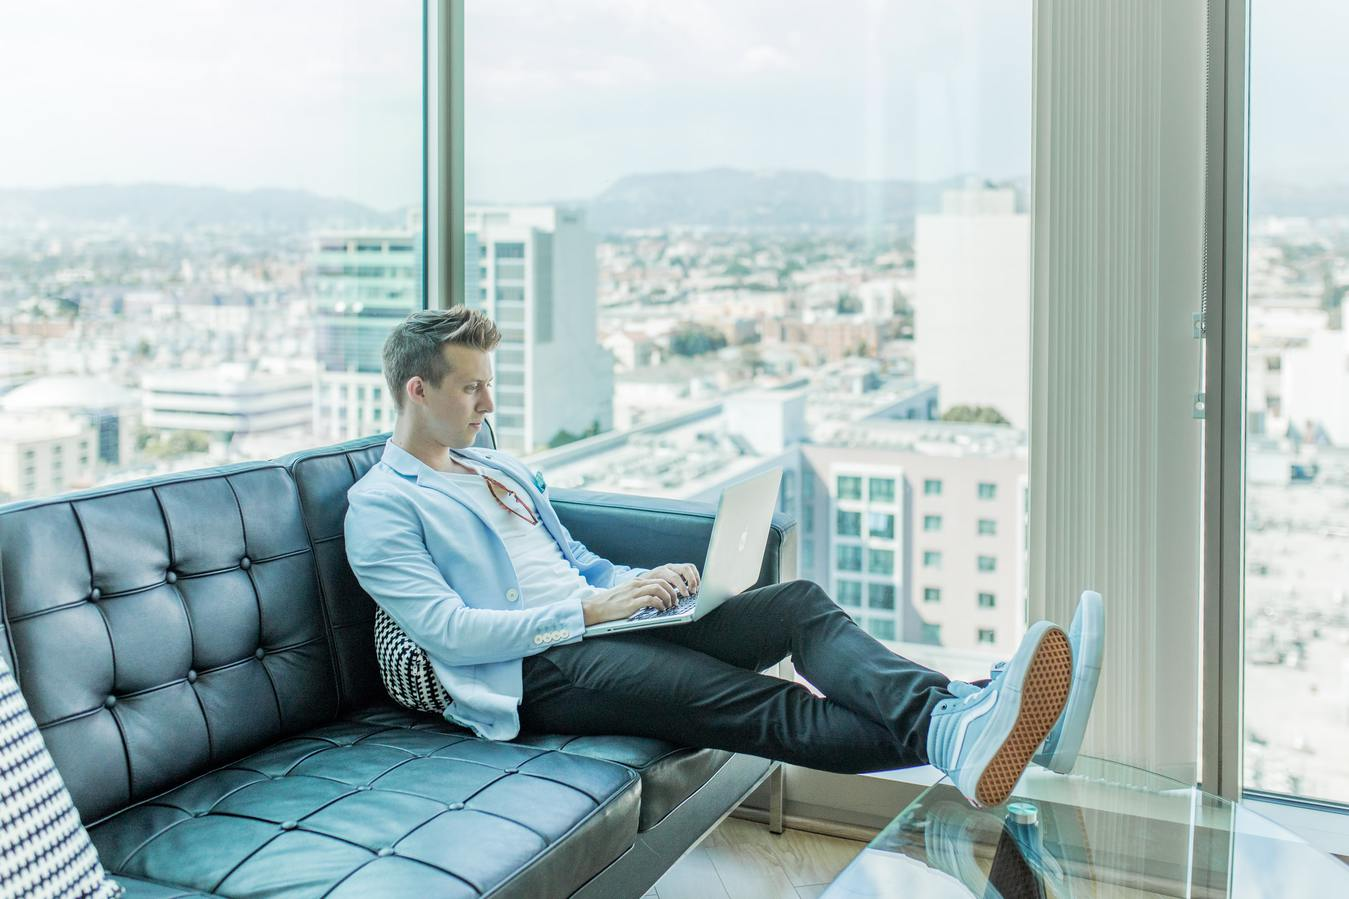 Man working on a laptop on a sofa with a city view